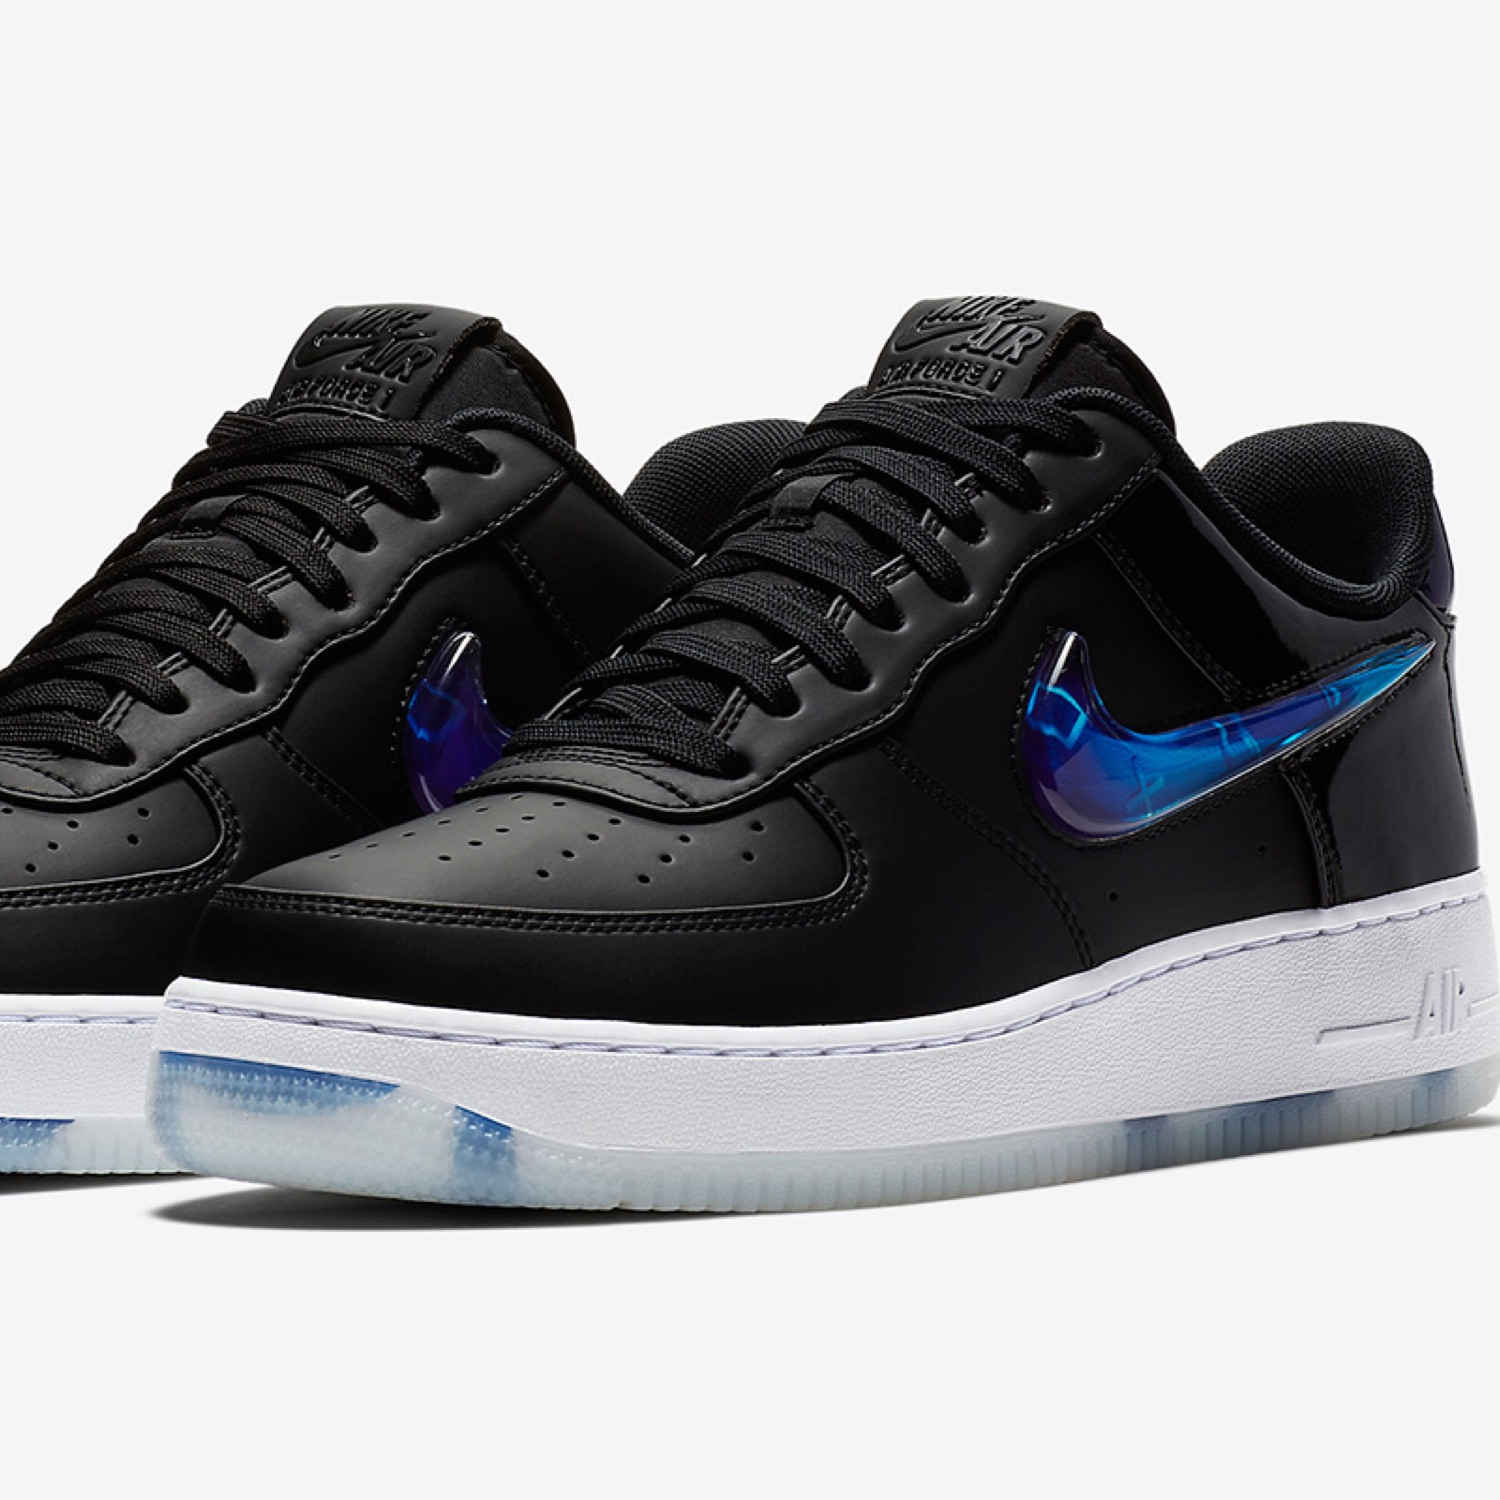 Nike Air Force 1 PlayStation '18 QS E3 2018 Exclusive SNKRS Size 11.5